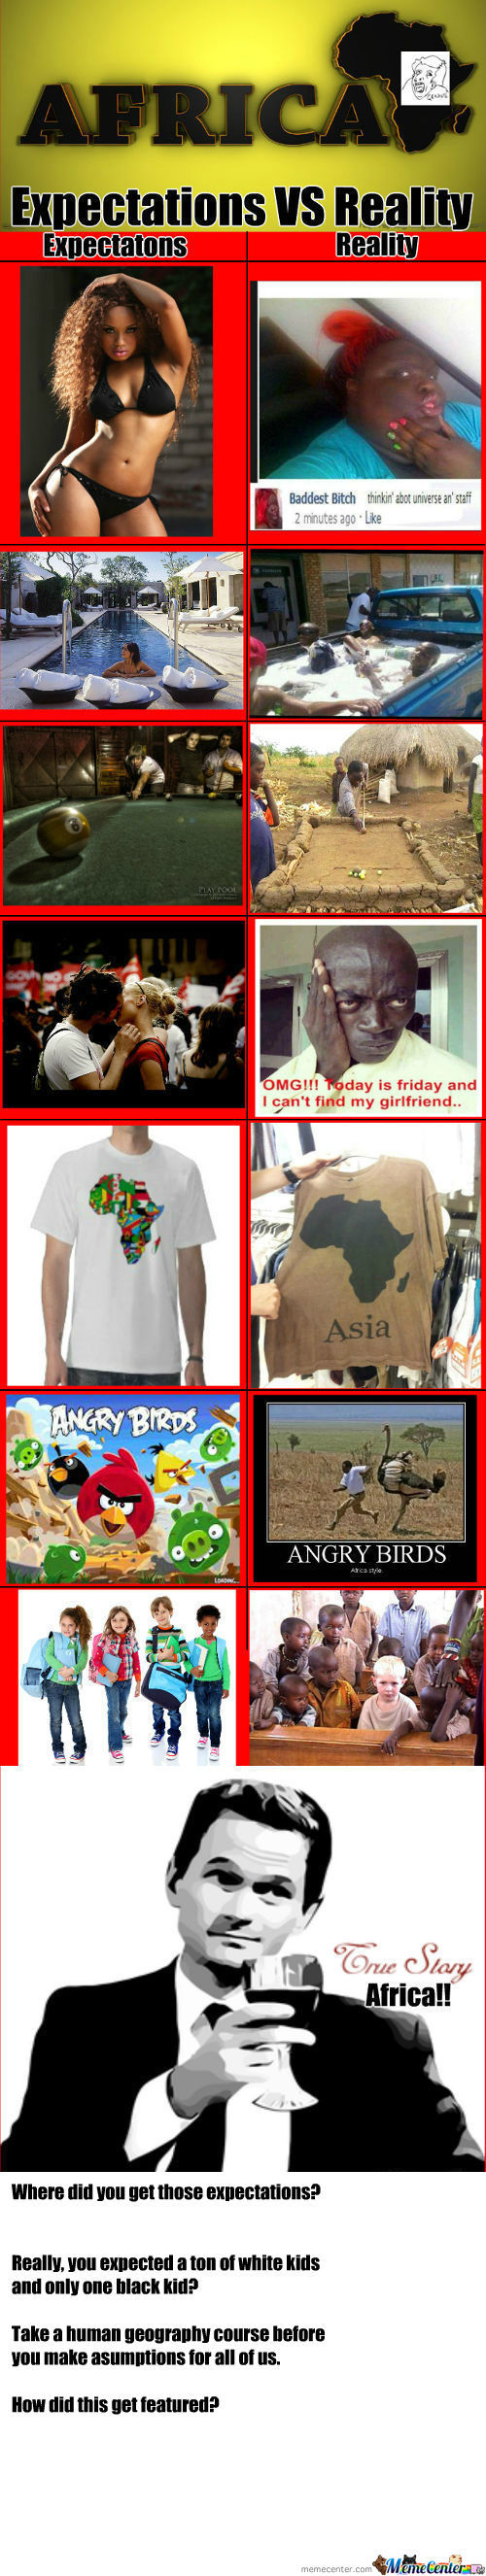 [RMX] Expectations Vs Reality Africa!!!